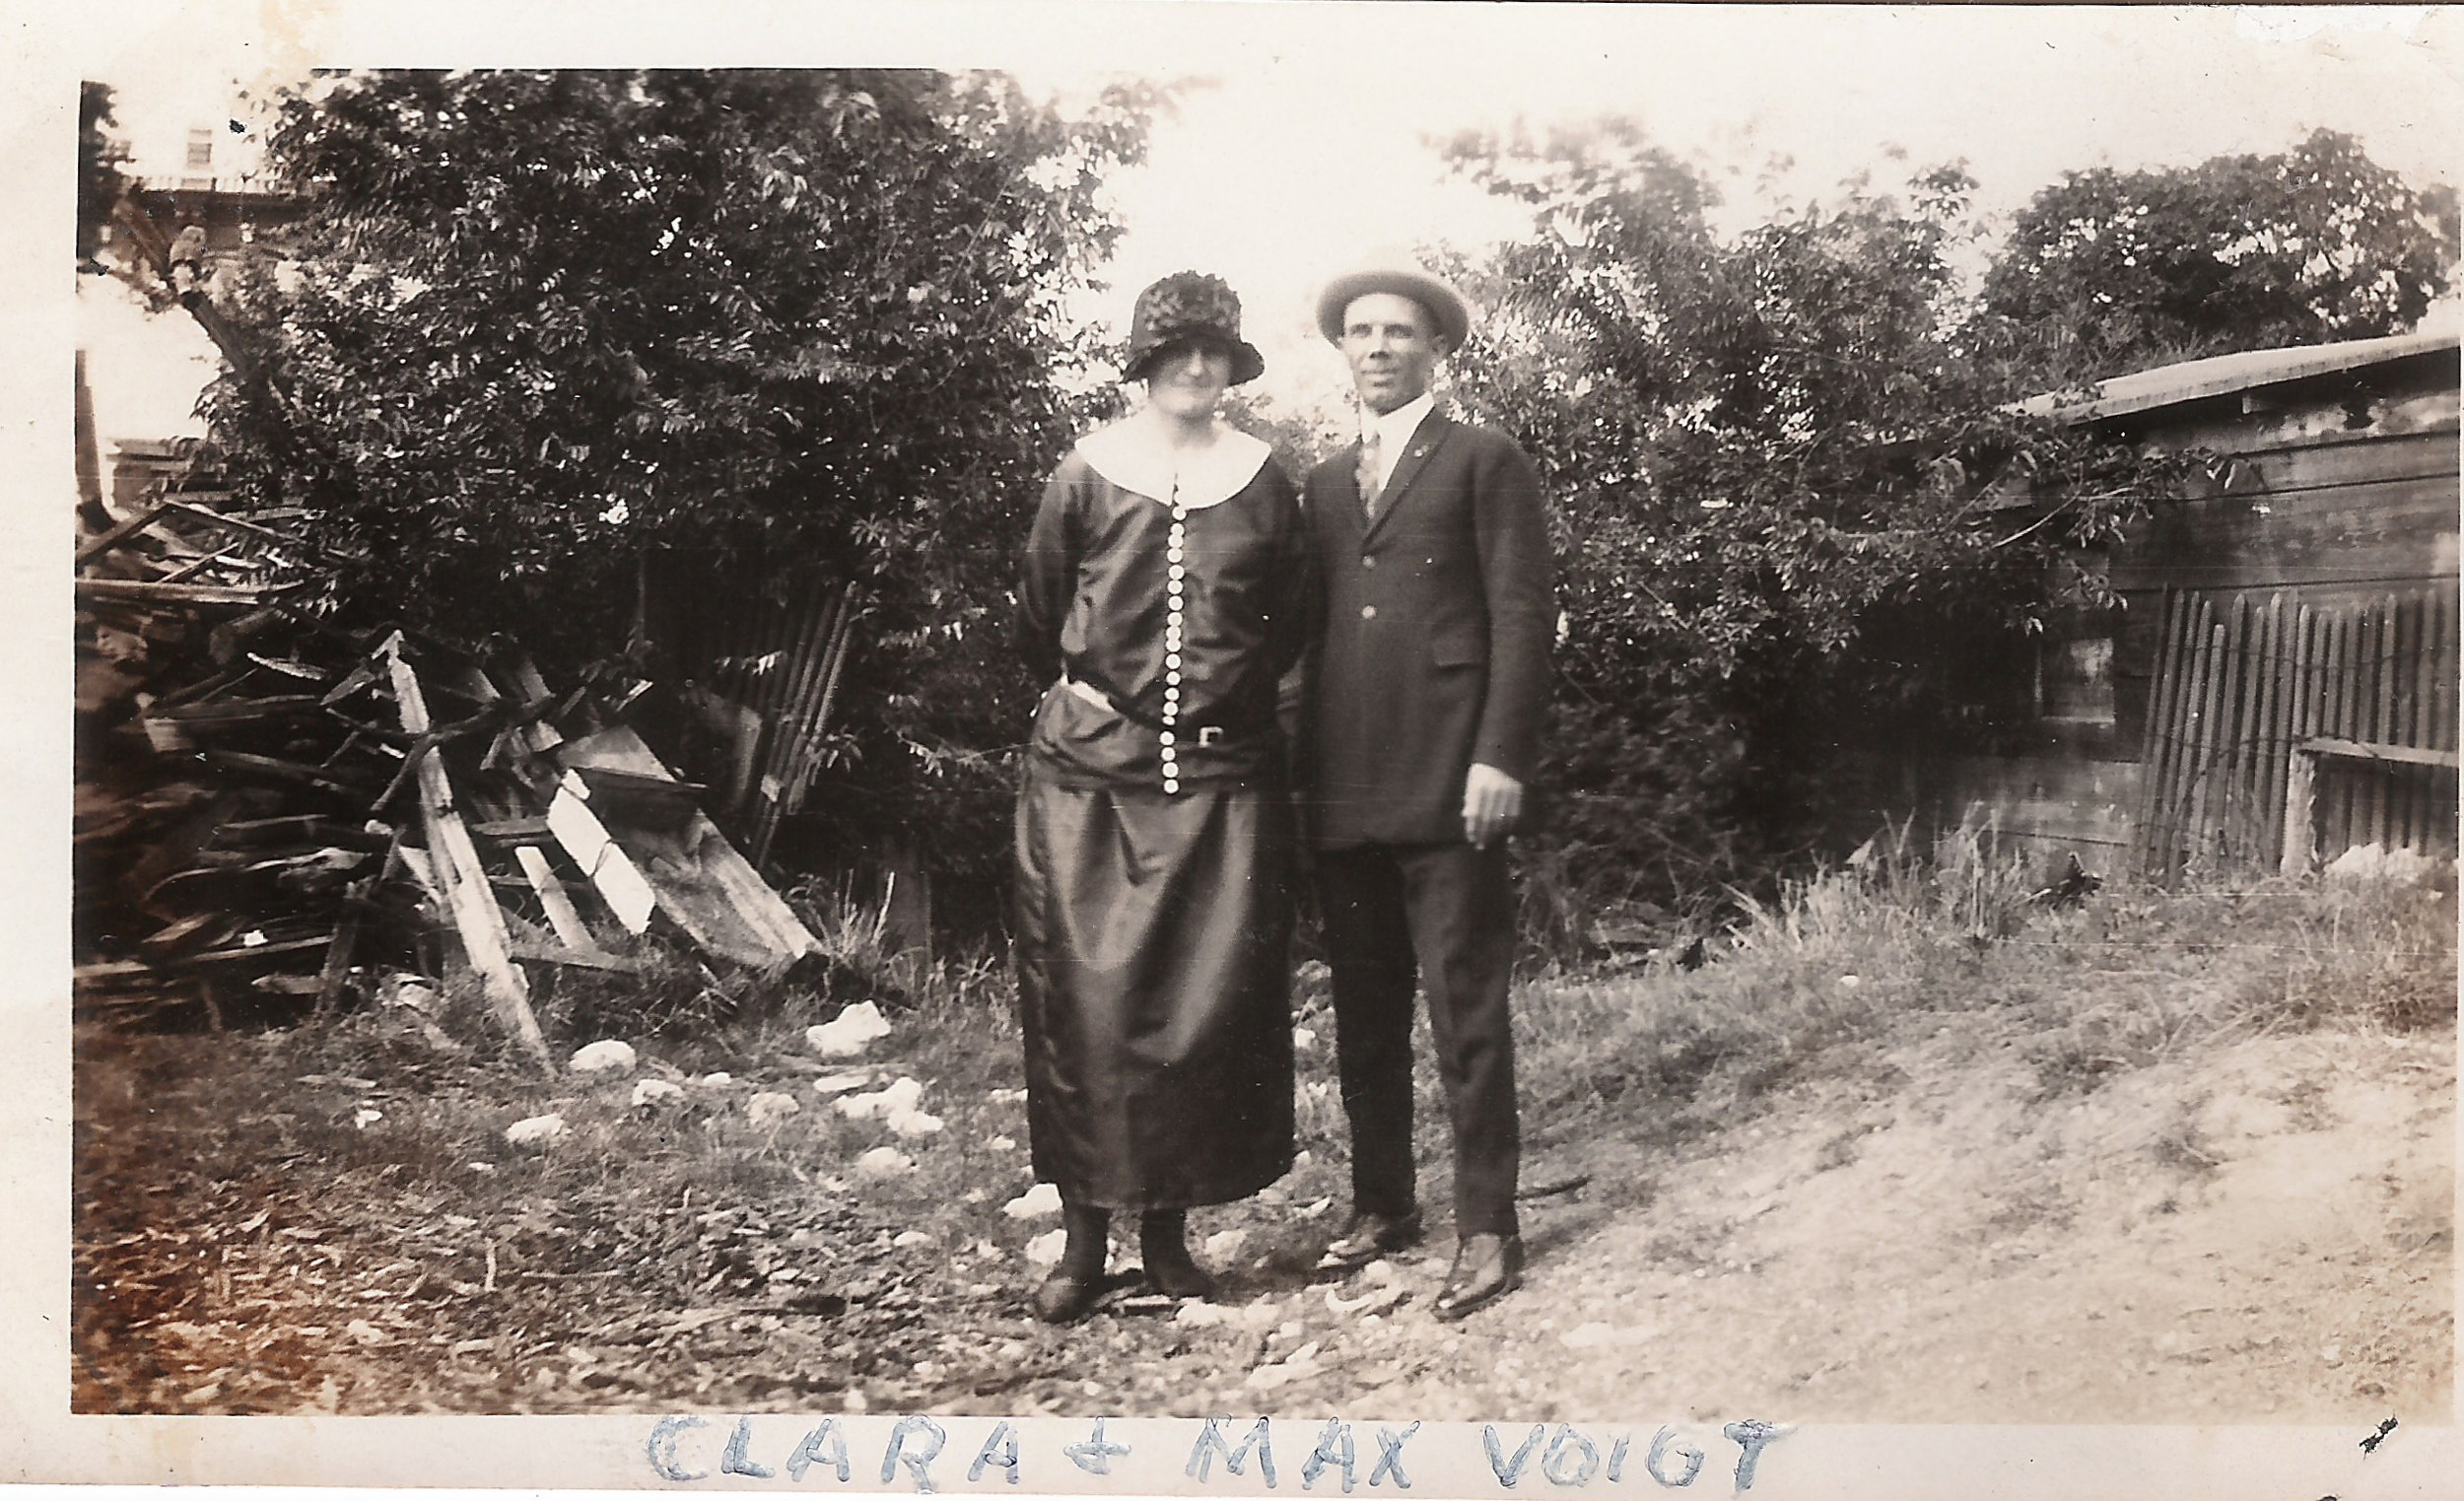 Clara and Max Voigt.jpg